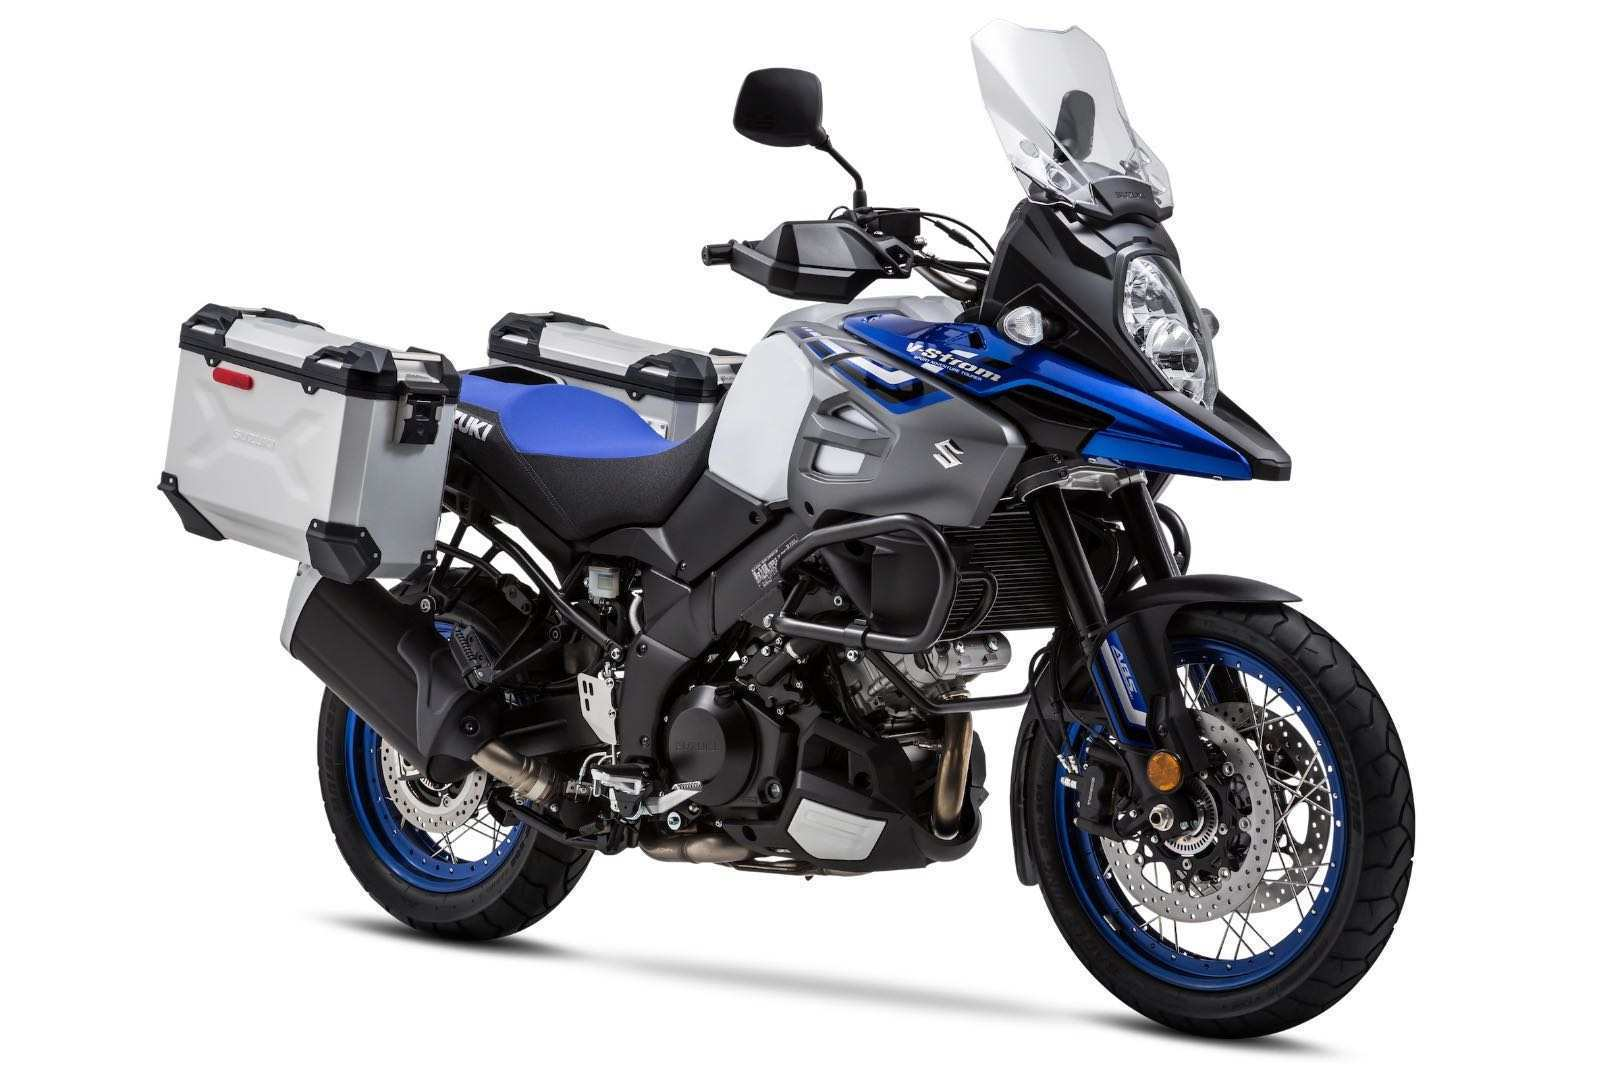 92 Gallery of Suzuki V Strom 2019 Performance for Suzuki V Strom 2019